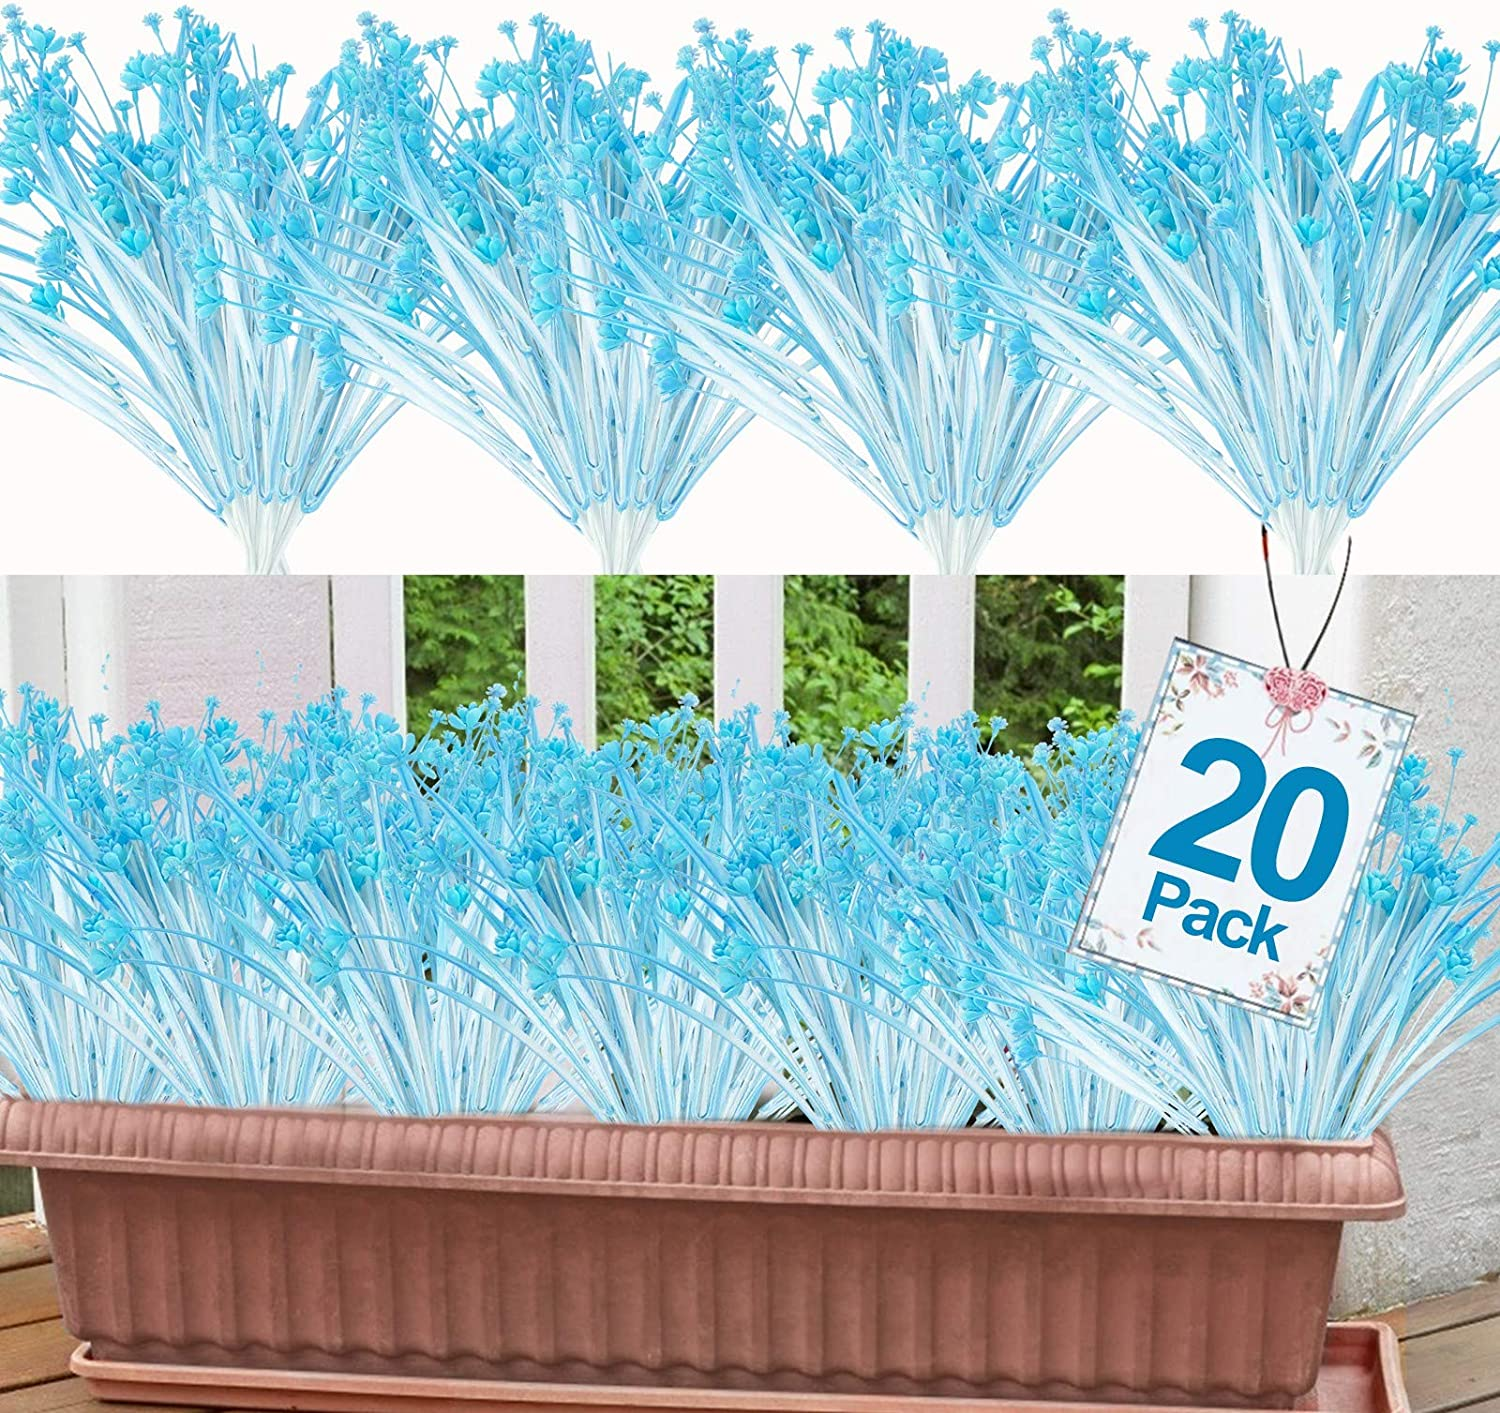 20 Bundles Artificial Flowers for Outdoor Decoration, UV Resistant Faux Outdoor Plastic Greenery Shrubs Plants Artificial Fake Flowers Hanging Planter Kitchen Home Office Garden Decor (Blue White)